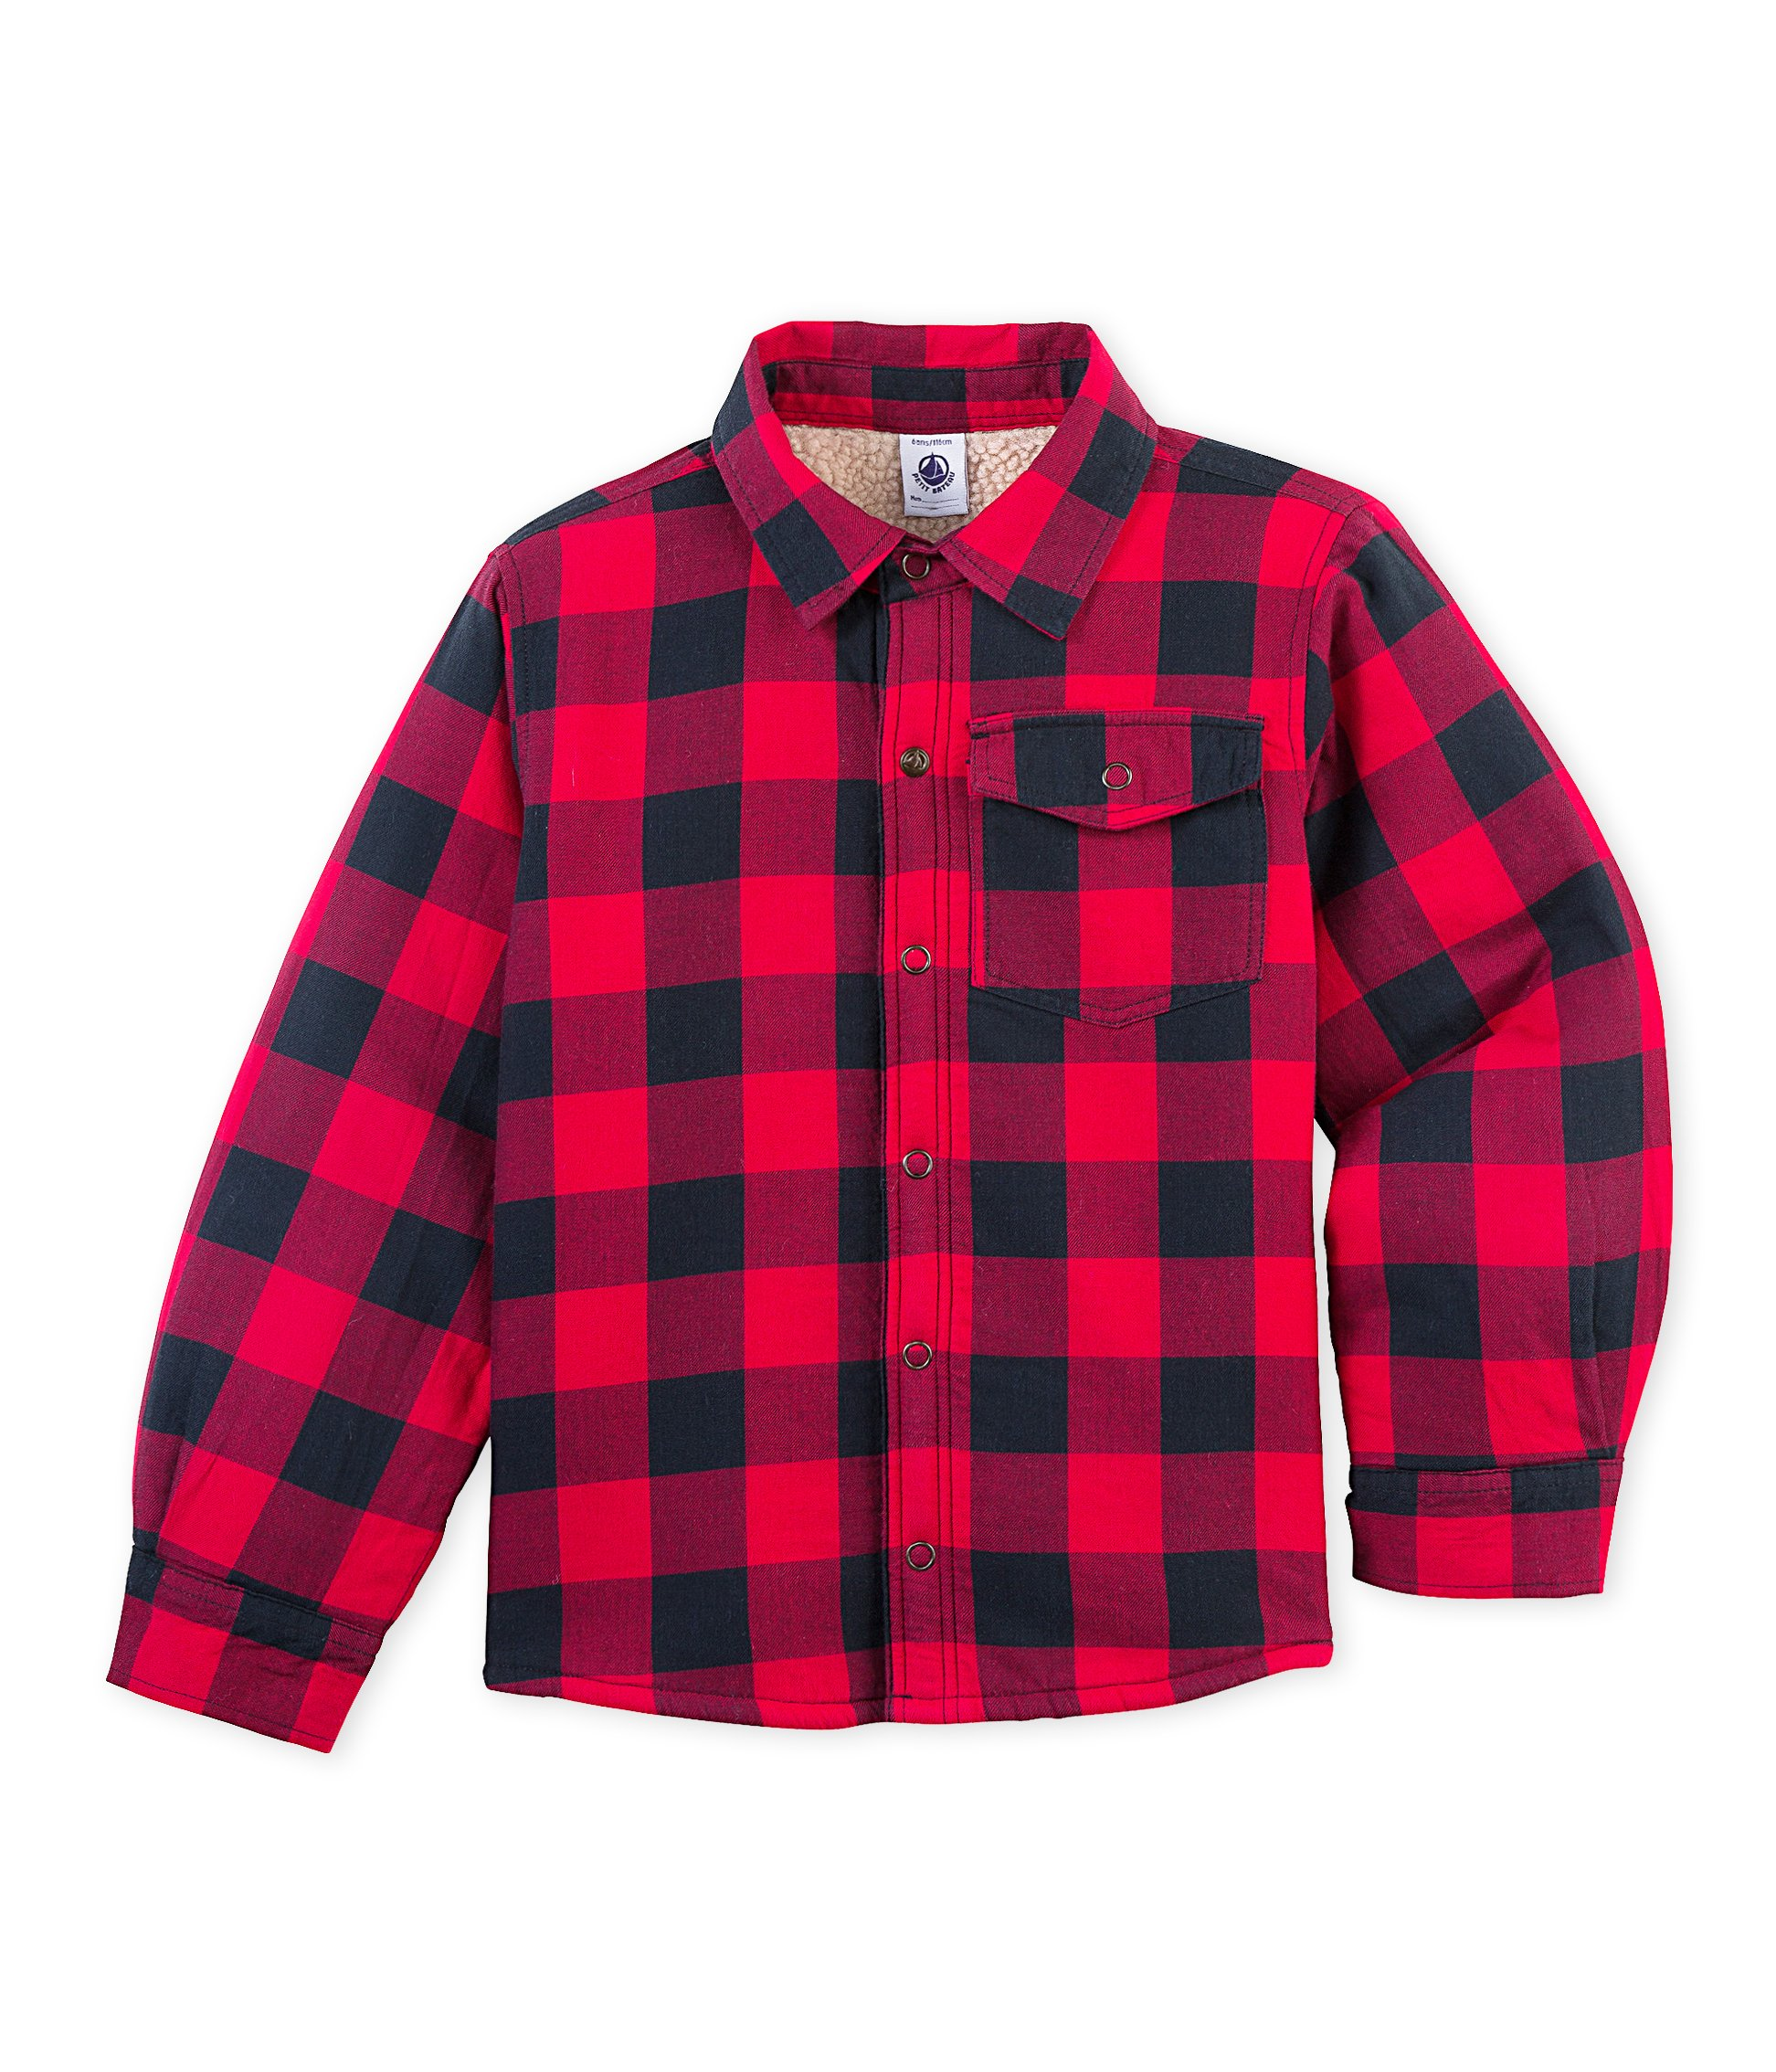 Petit Bateau Boys' Checkered Jacket with Sherpa Lining, Red Navy 6 Kids